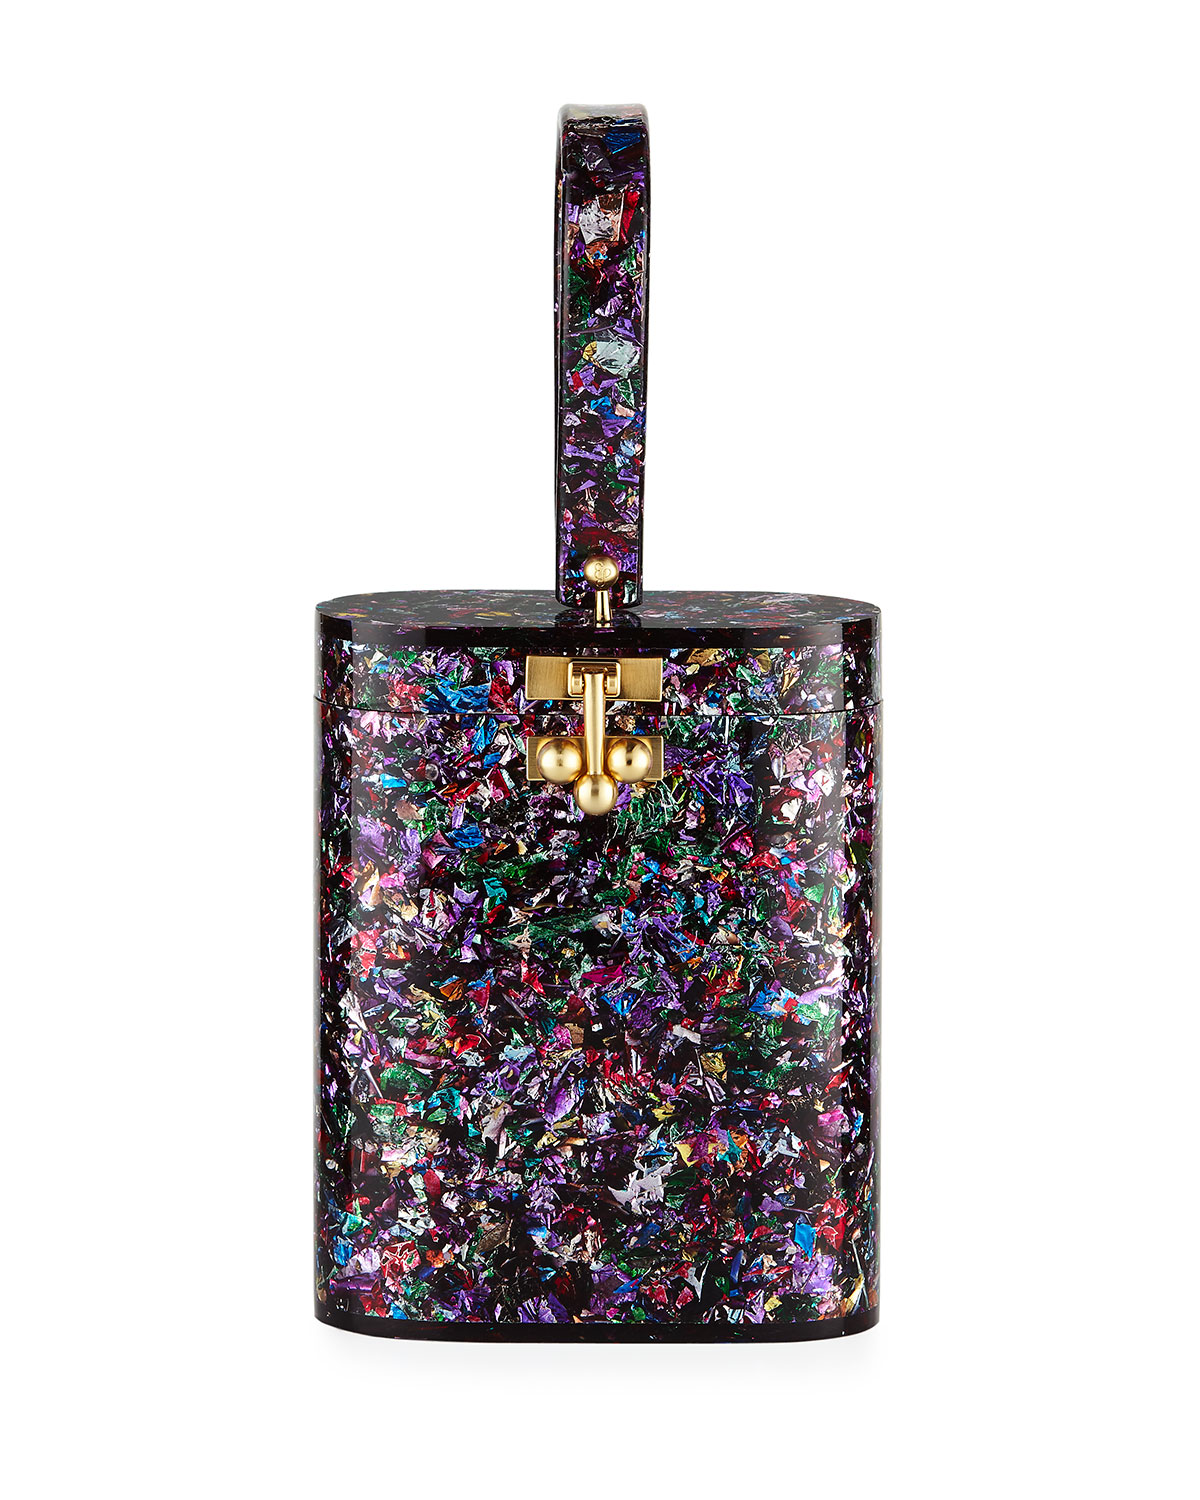 Oval Glitter Minaudiere Bag by Edie Parker